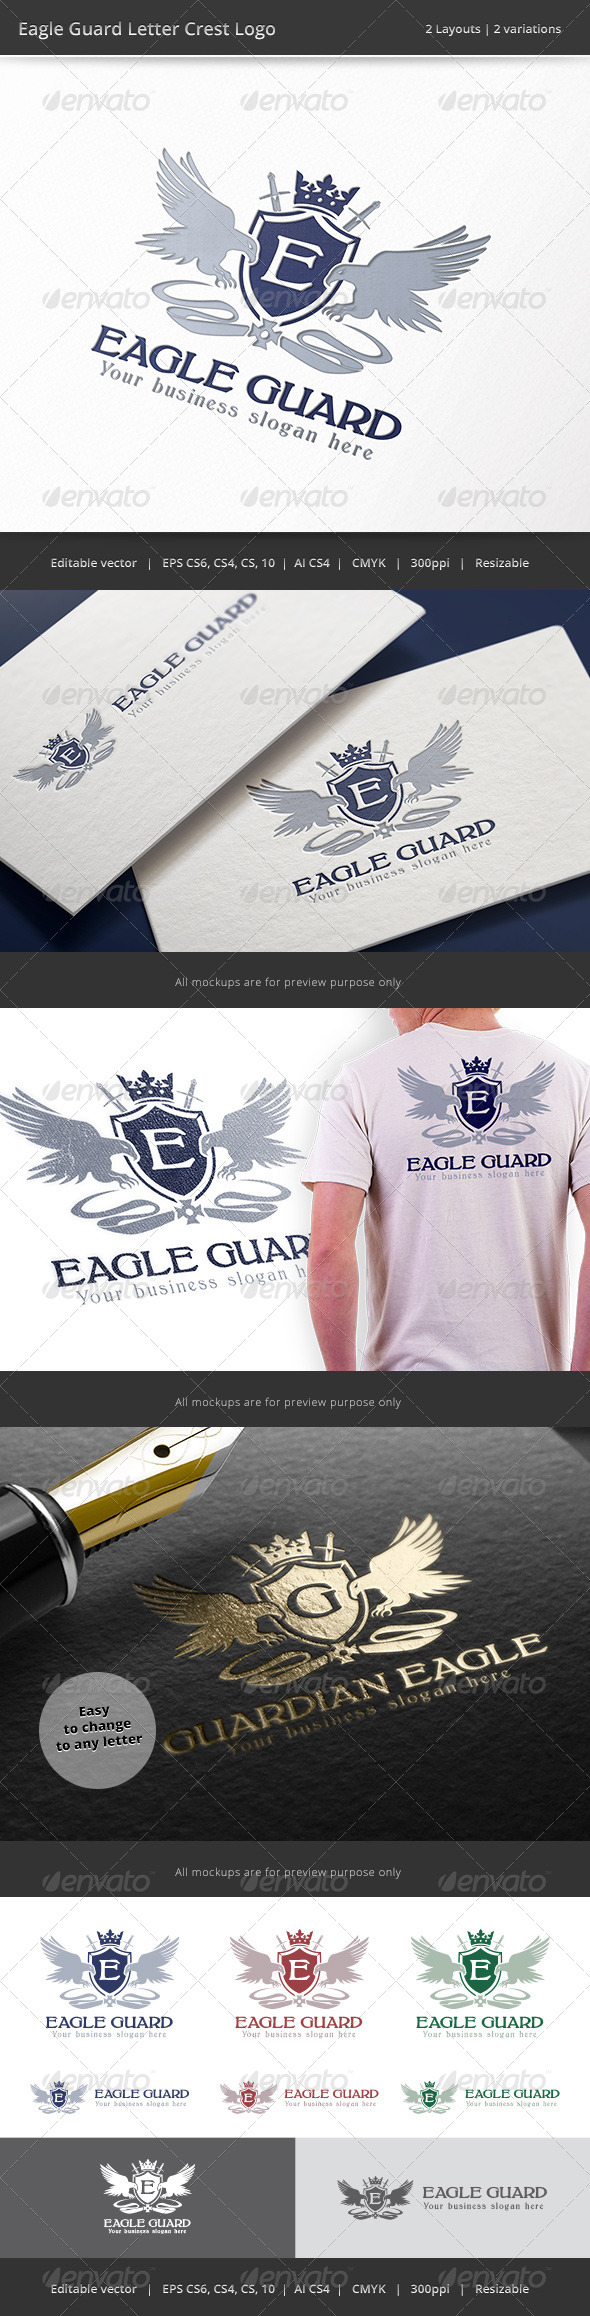 GraphicRiver Eagle Guard Letter Crest Logo 8524874